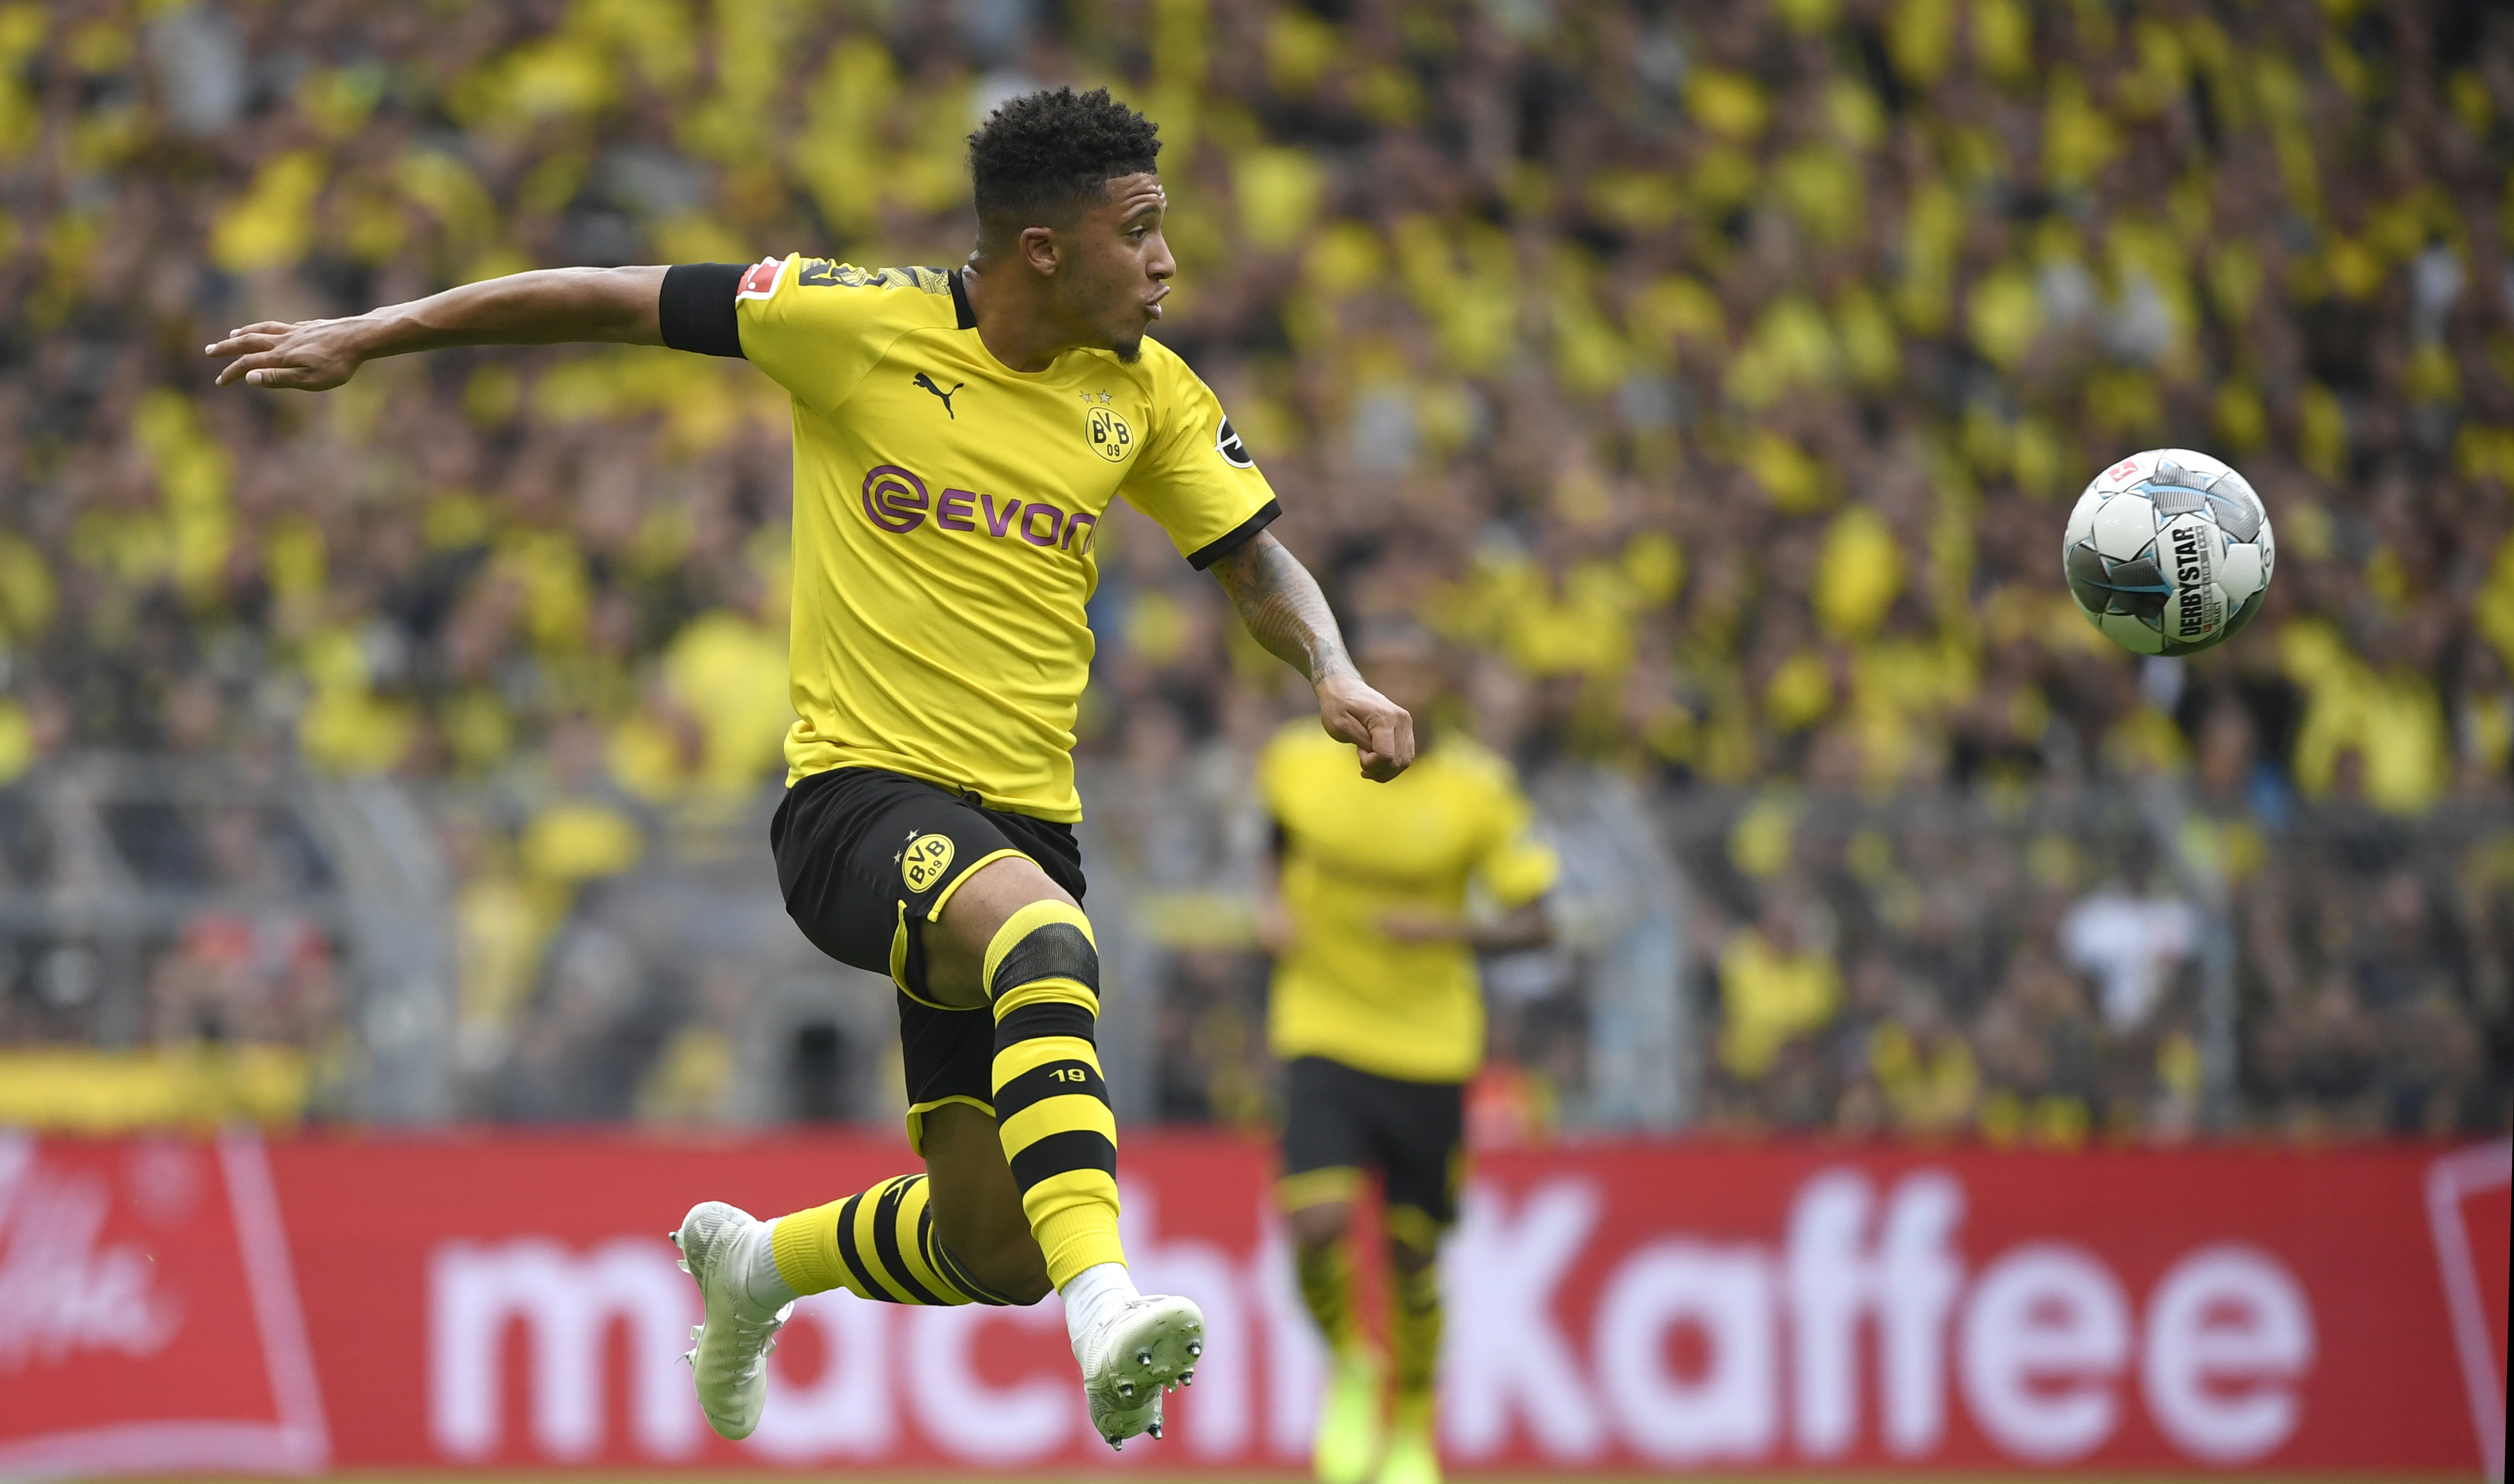 Sancho has enjoyed a spectacular rise to stardom at Borussia Dortmund (Photo by INA FASSBENDER/AFP/Getty Images)